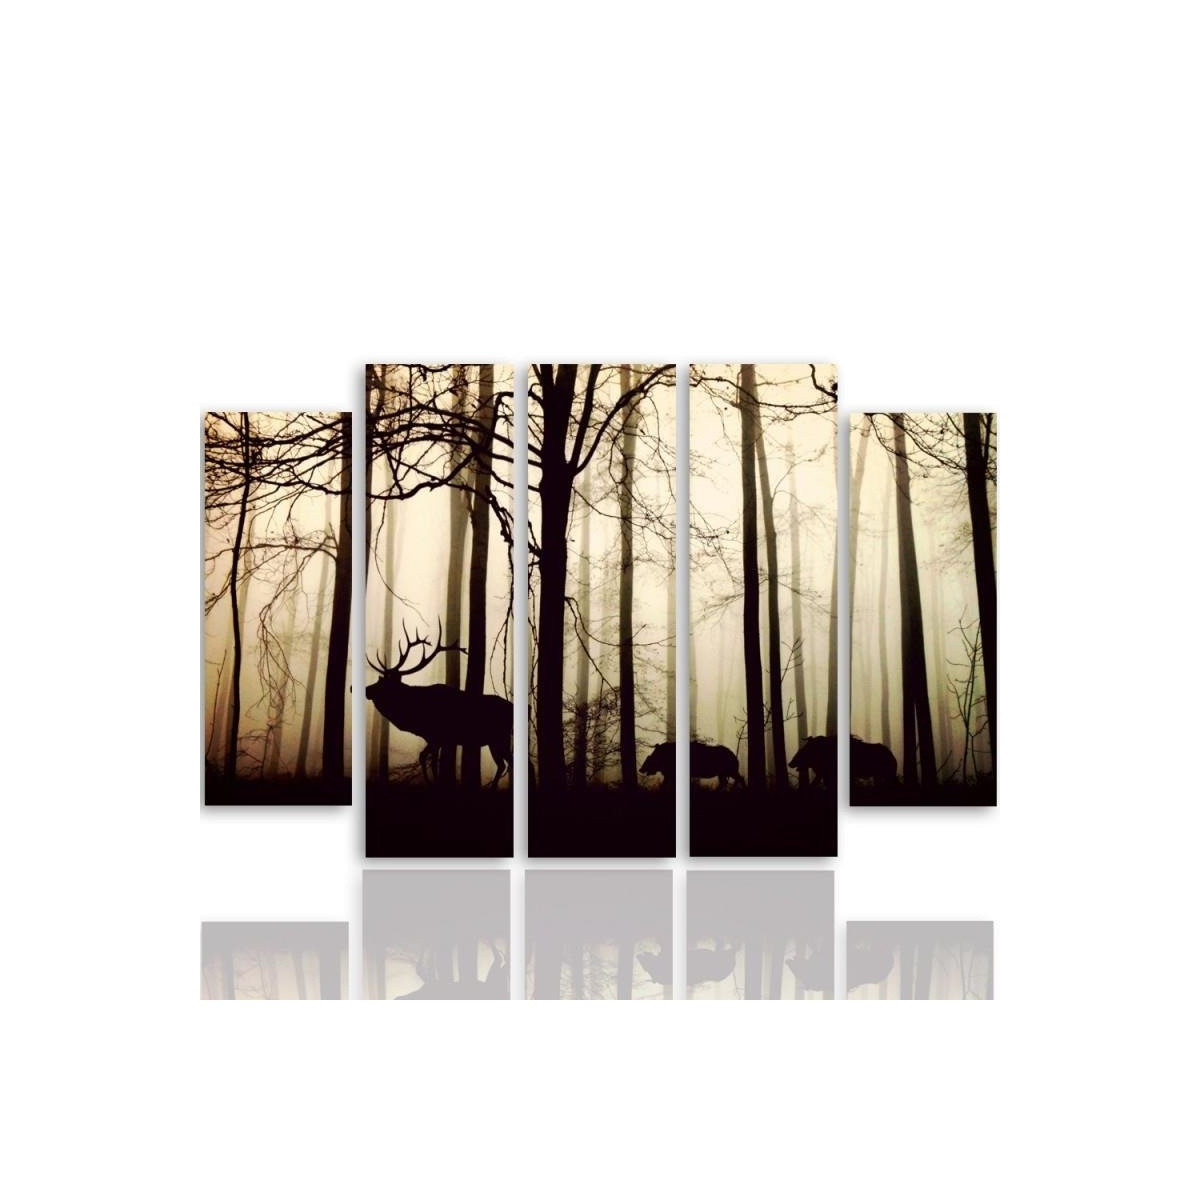 Five Part Picture On Canvas, Pentaptych, Type B, Animals In The Forest 100x150